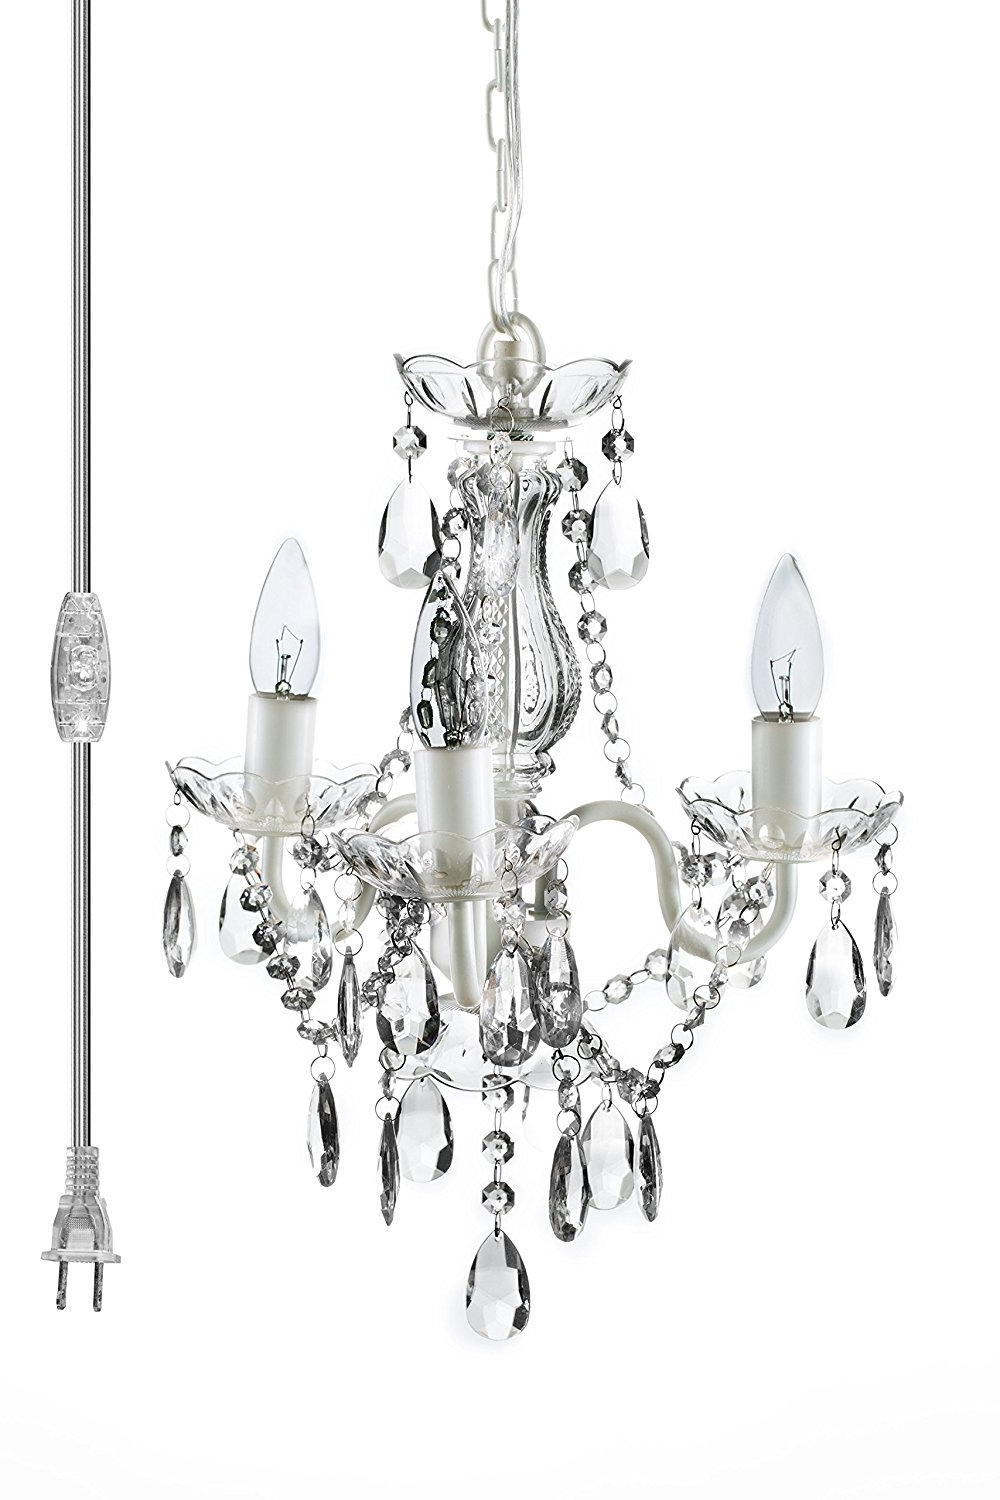 Mini Crystal Chandeliers Within Newest The Original Gypsy Color 3 Light Mini Plug In Crystal Chandelier For (View 11 of 15)